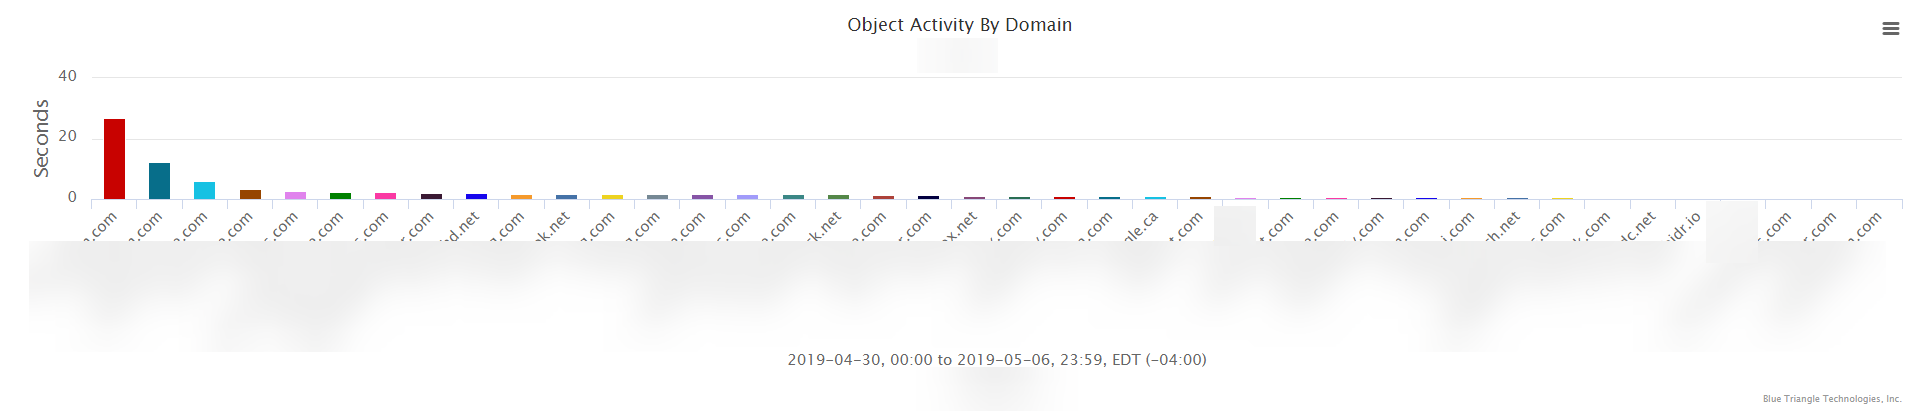 Object_Activity_by_Domain_Report.png